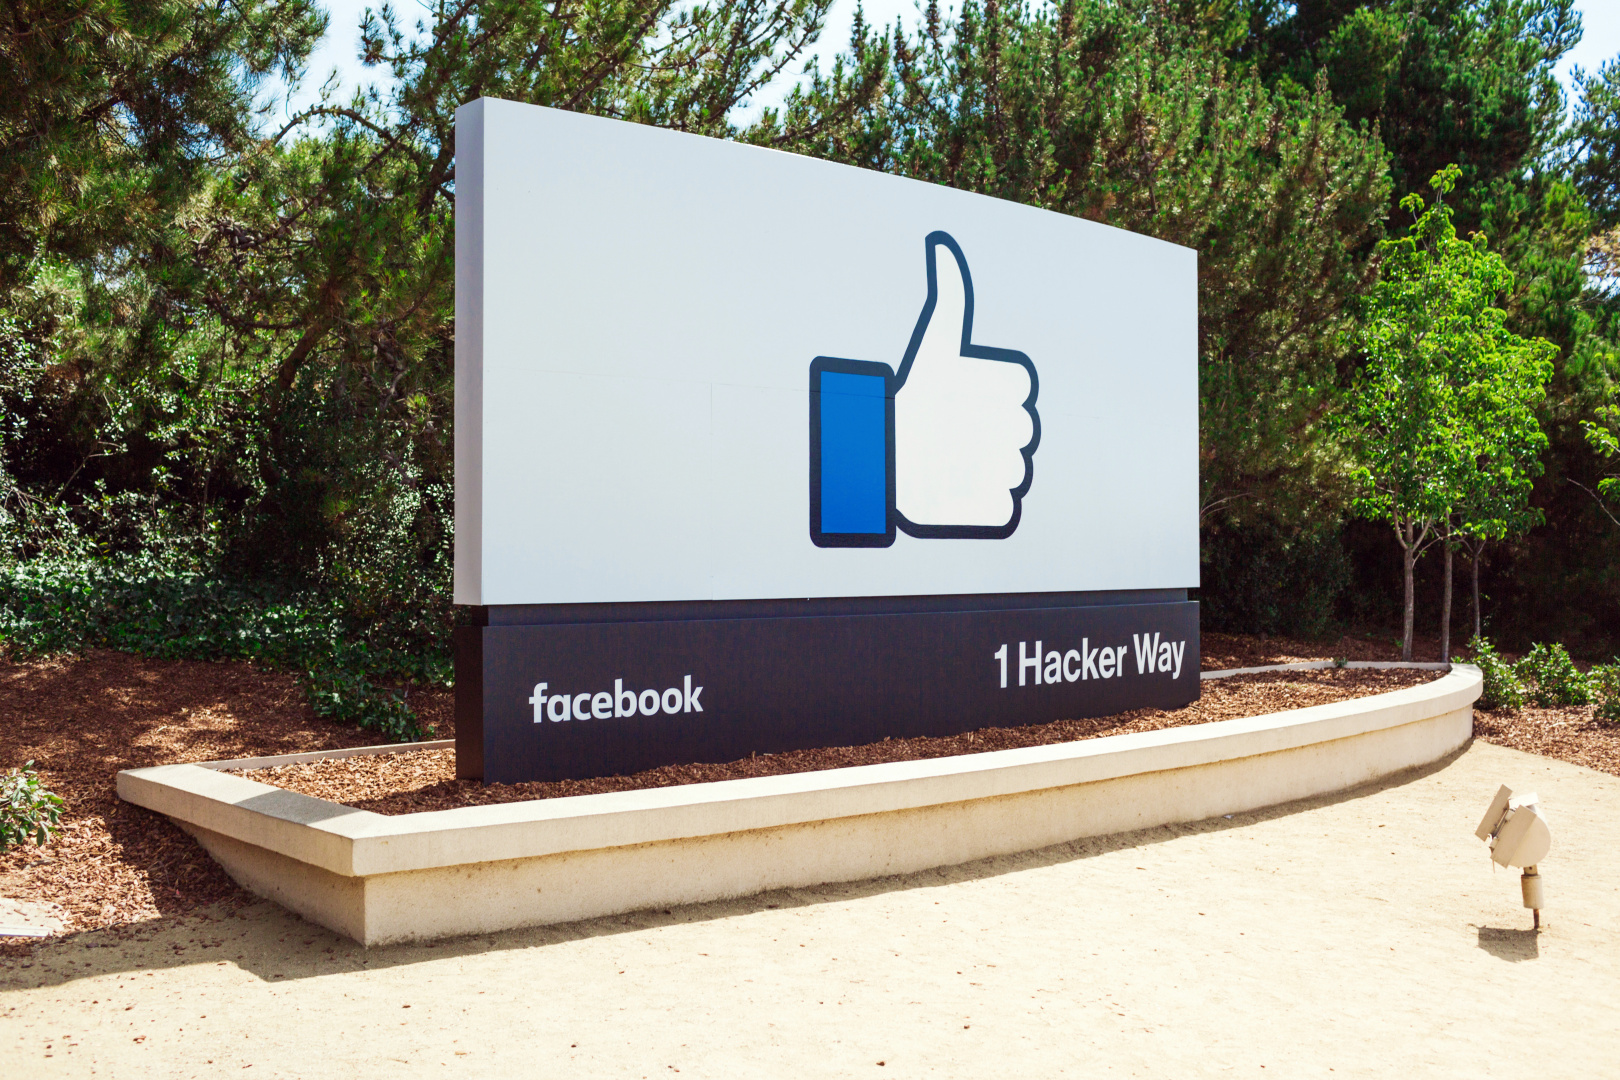 Facebook will show fewer links to slow-loading websites